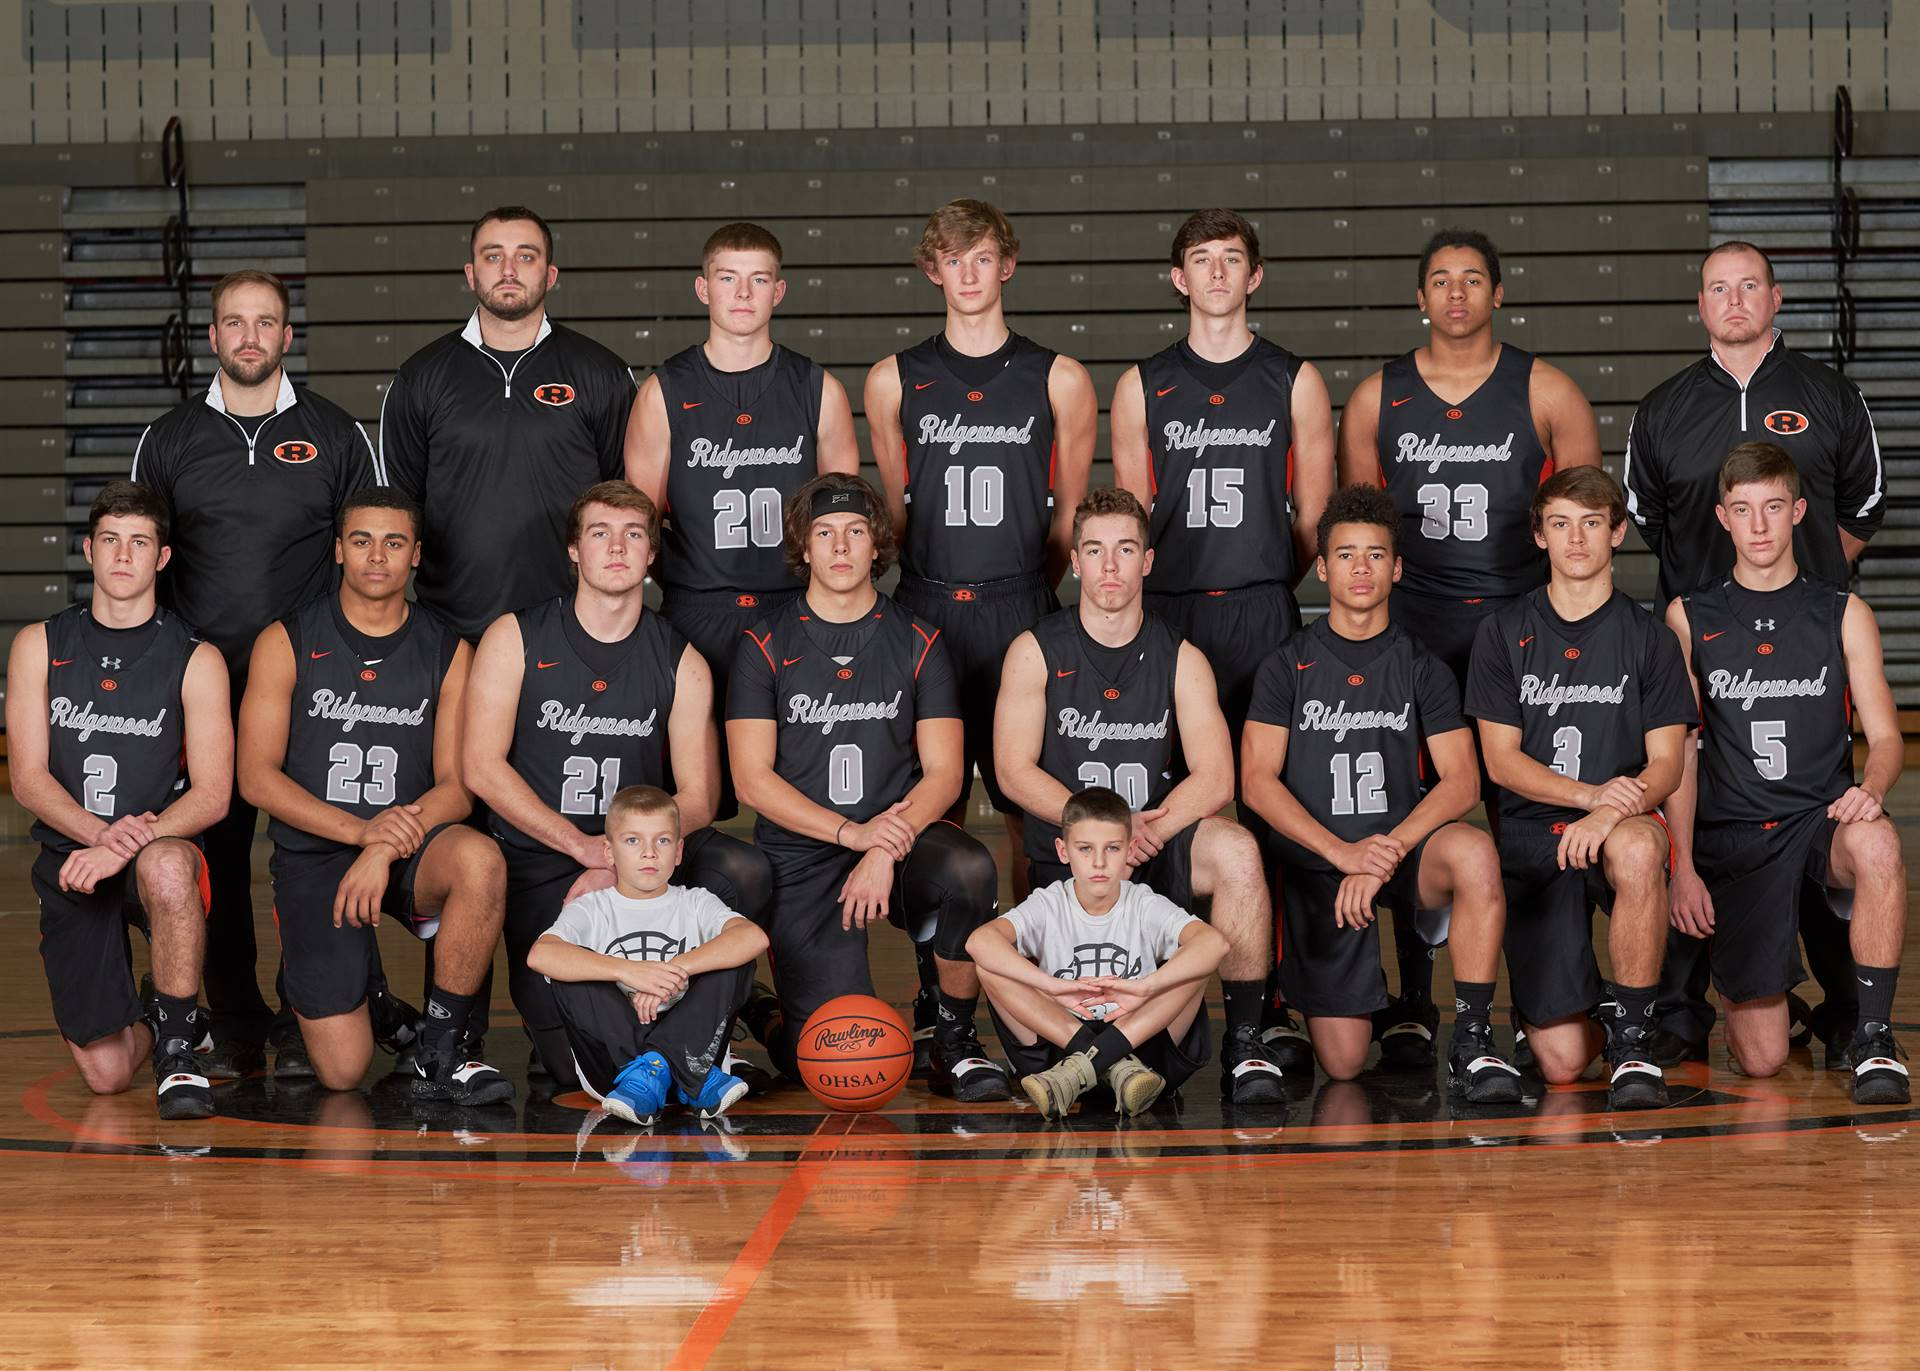 HS Boys Varsity Basketball Team